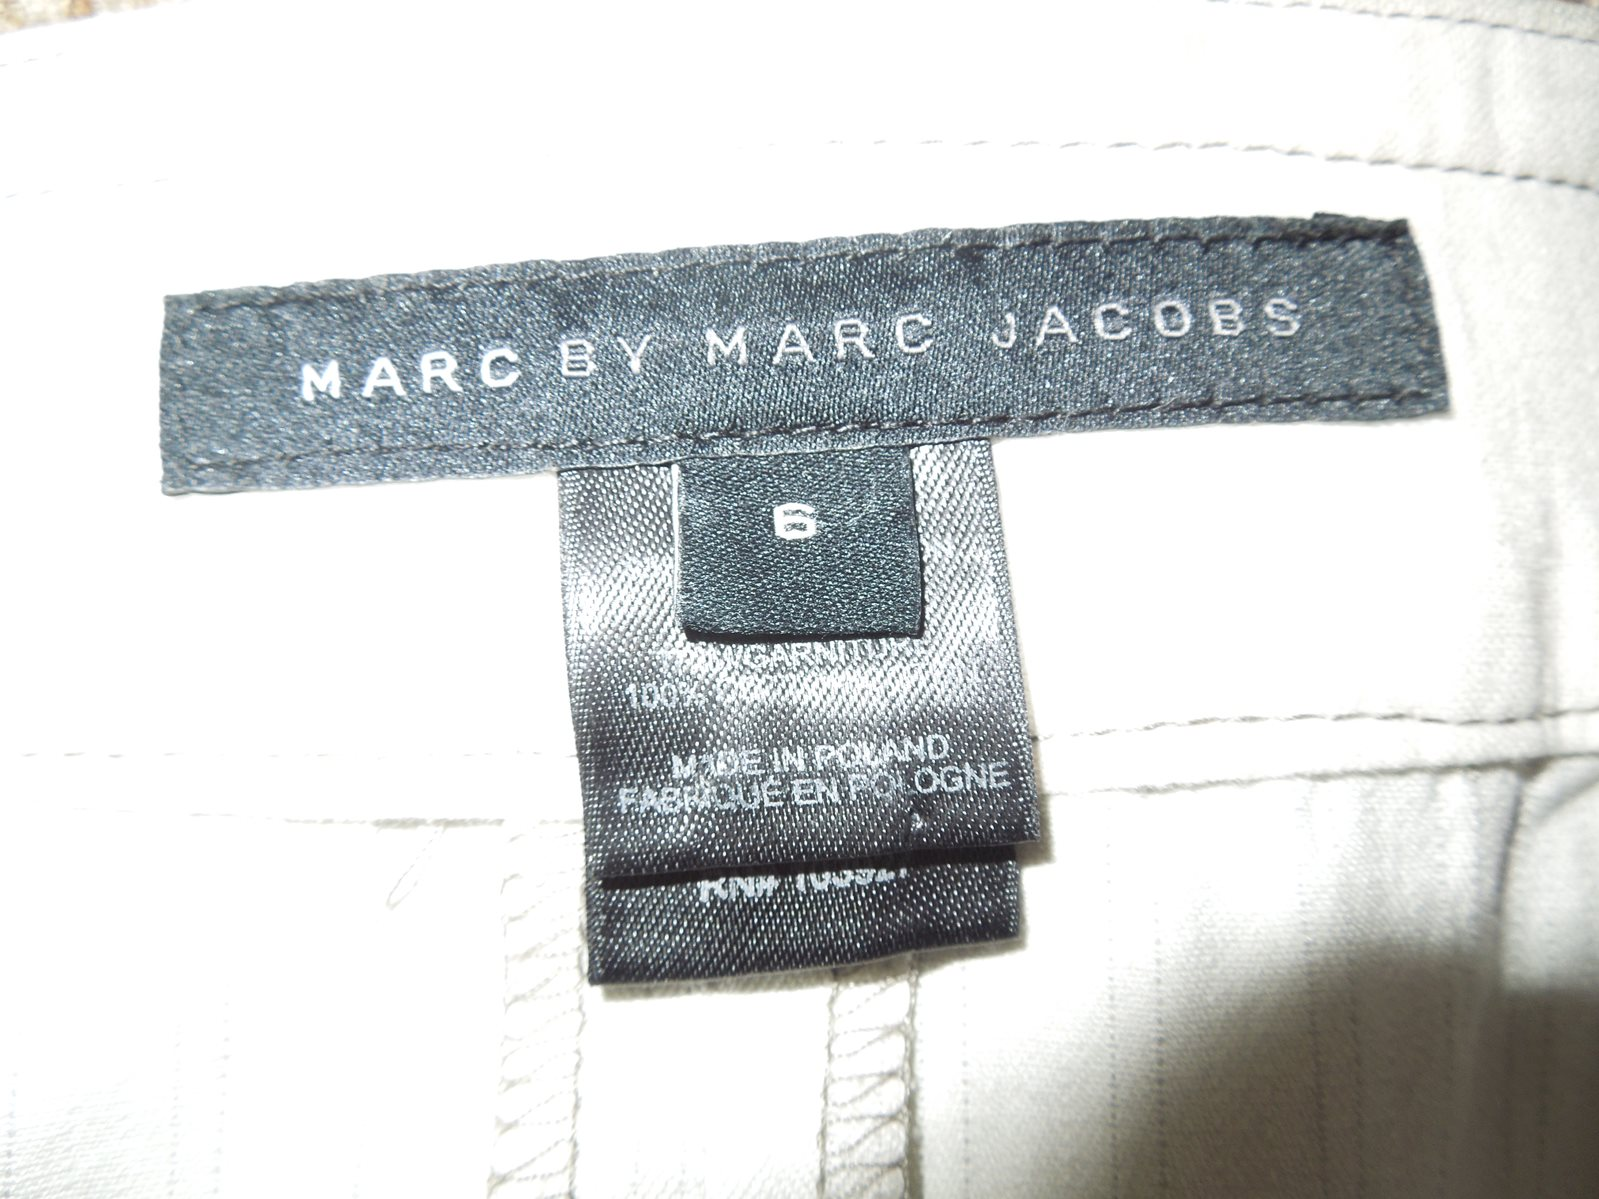 Marc by Marc Jacobs - The Loft, London